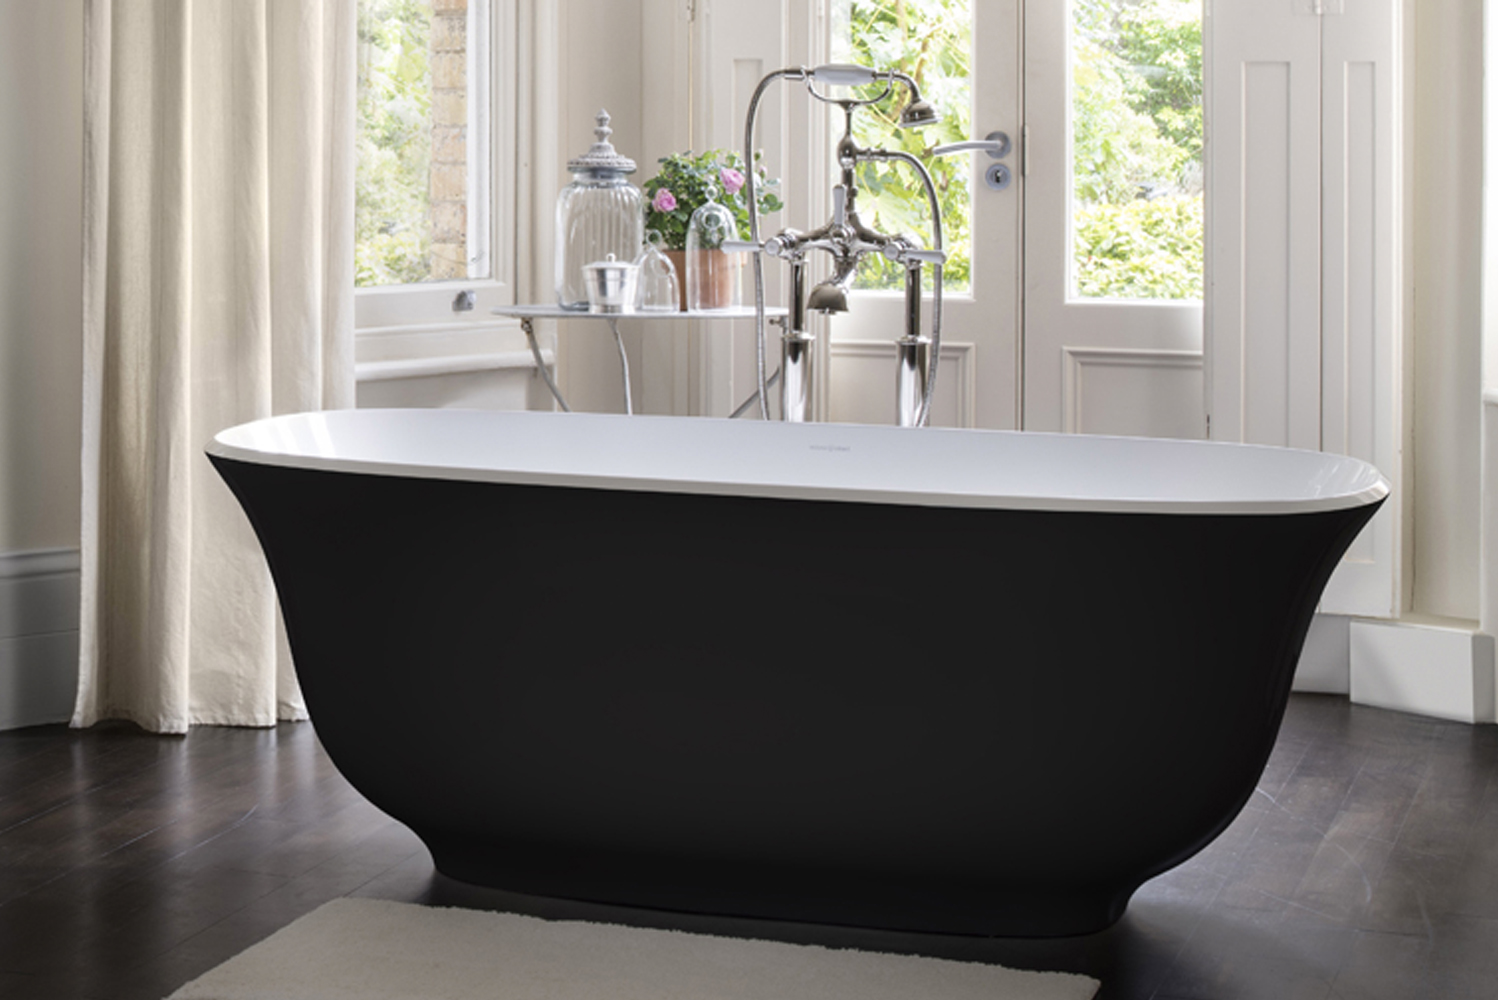 Victoria + Albert launched the Amiata freestanding bathtub.